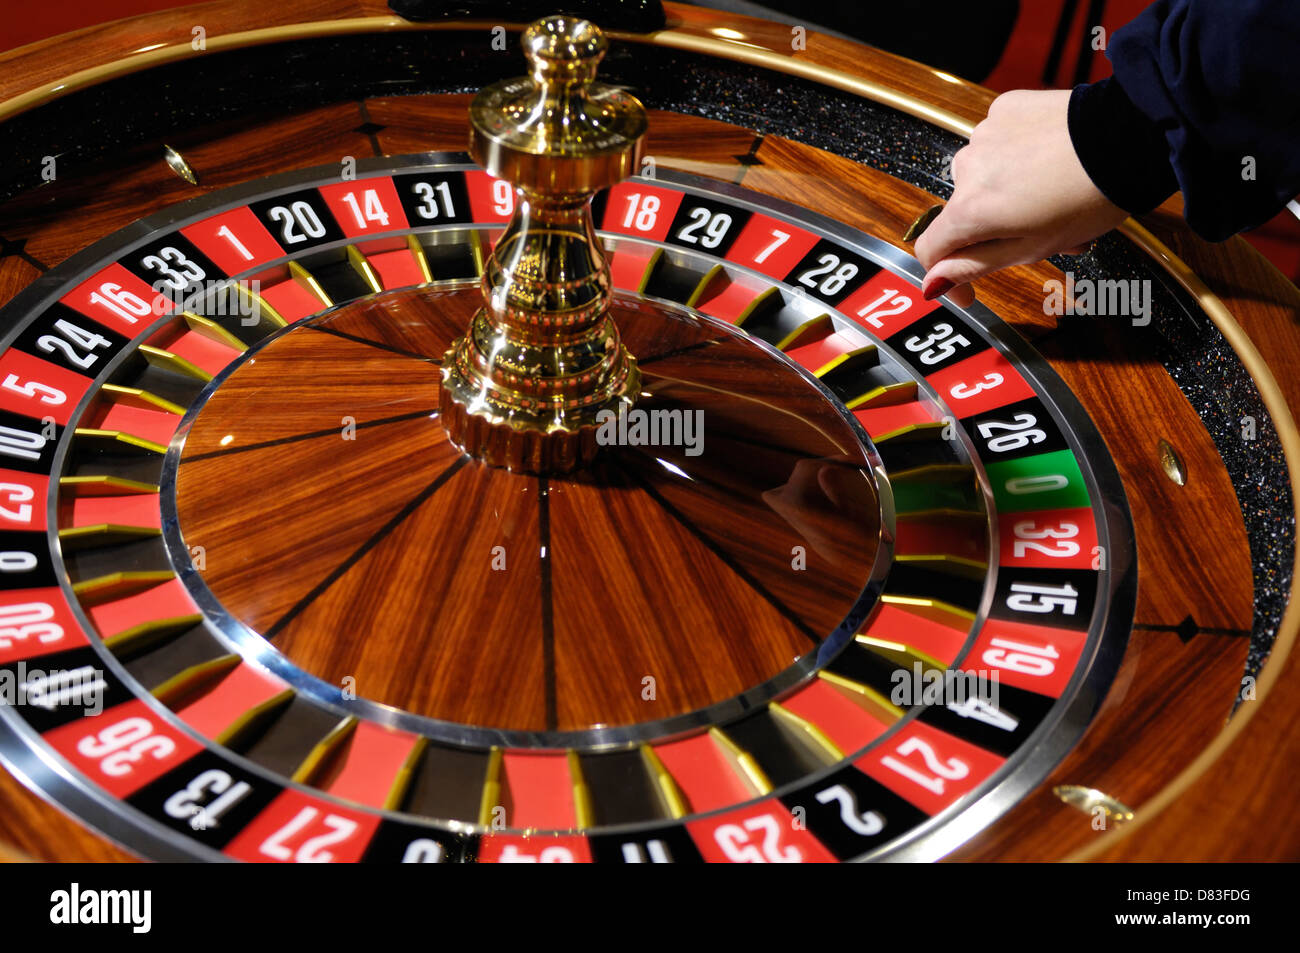 Betting wheel csgo betting predictions group usa